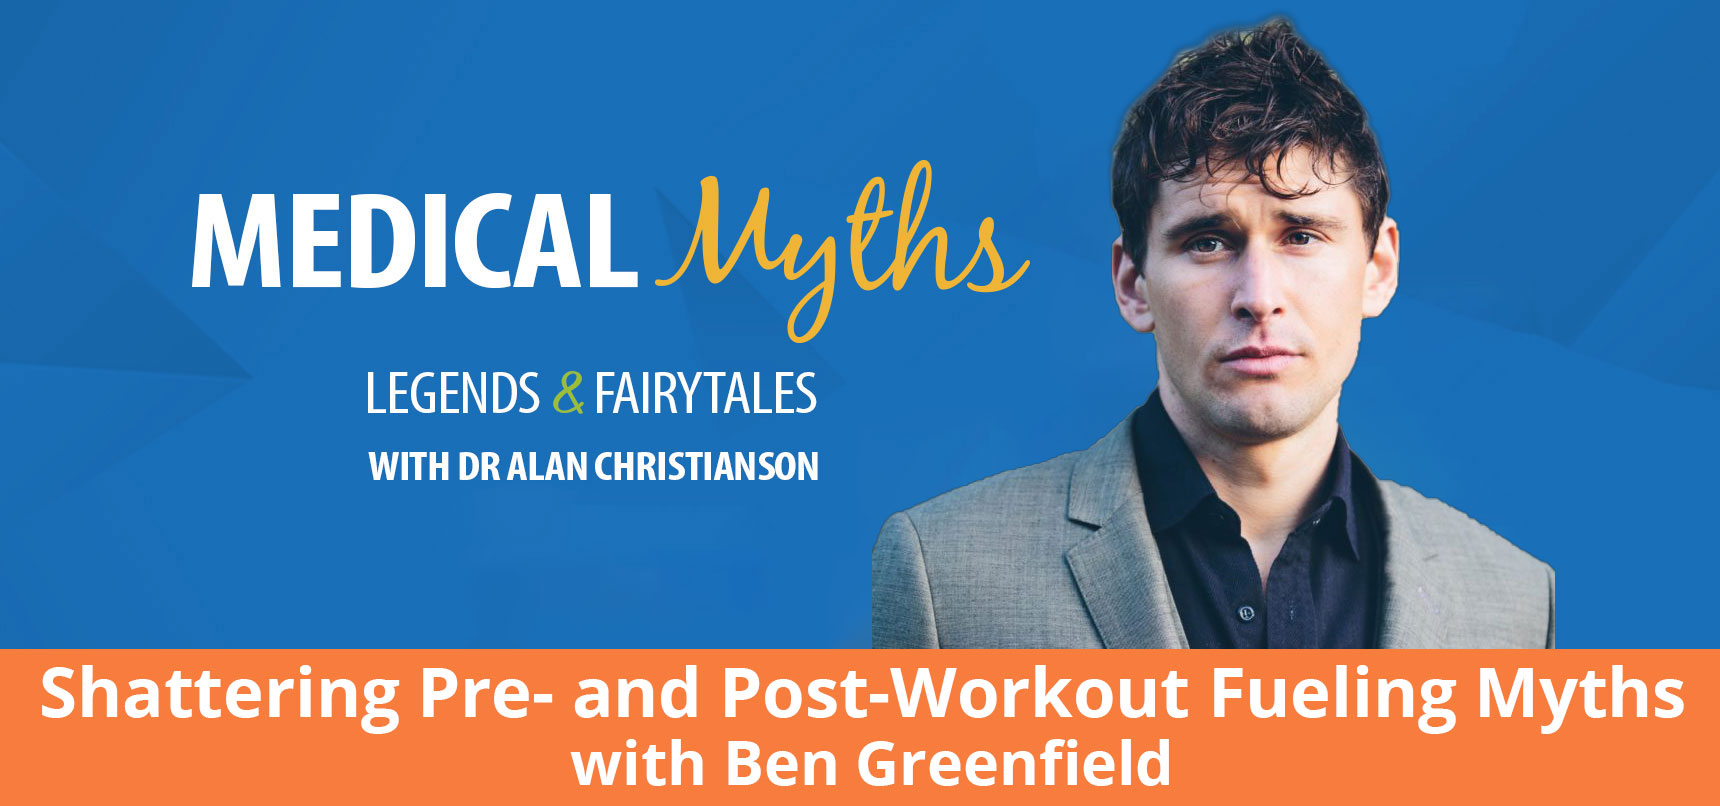 Podcast - Shattering Pre- and Post-Workout Fueling Myths with Ben Greenfield